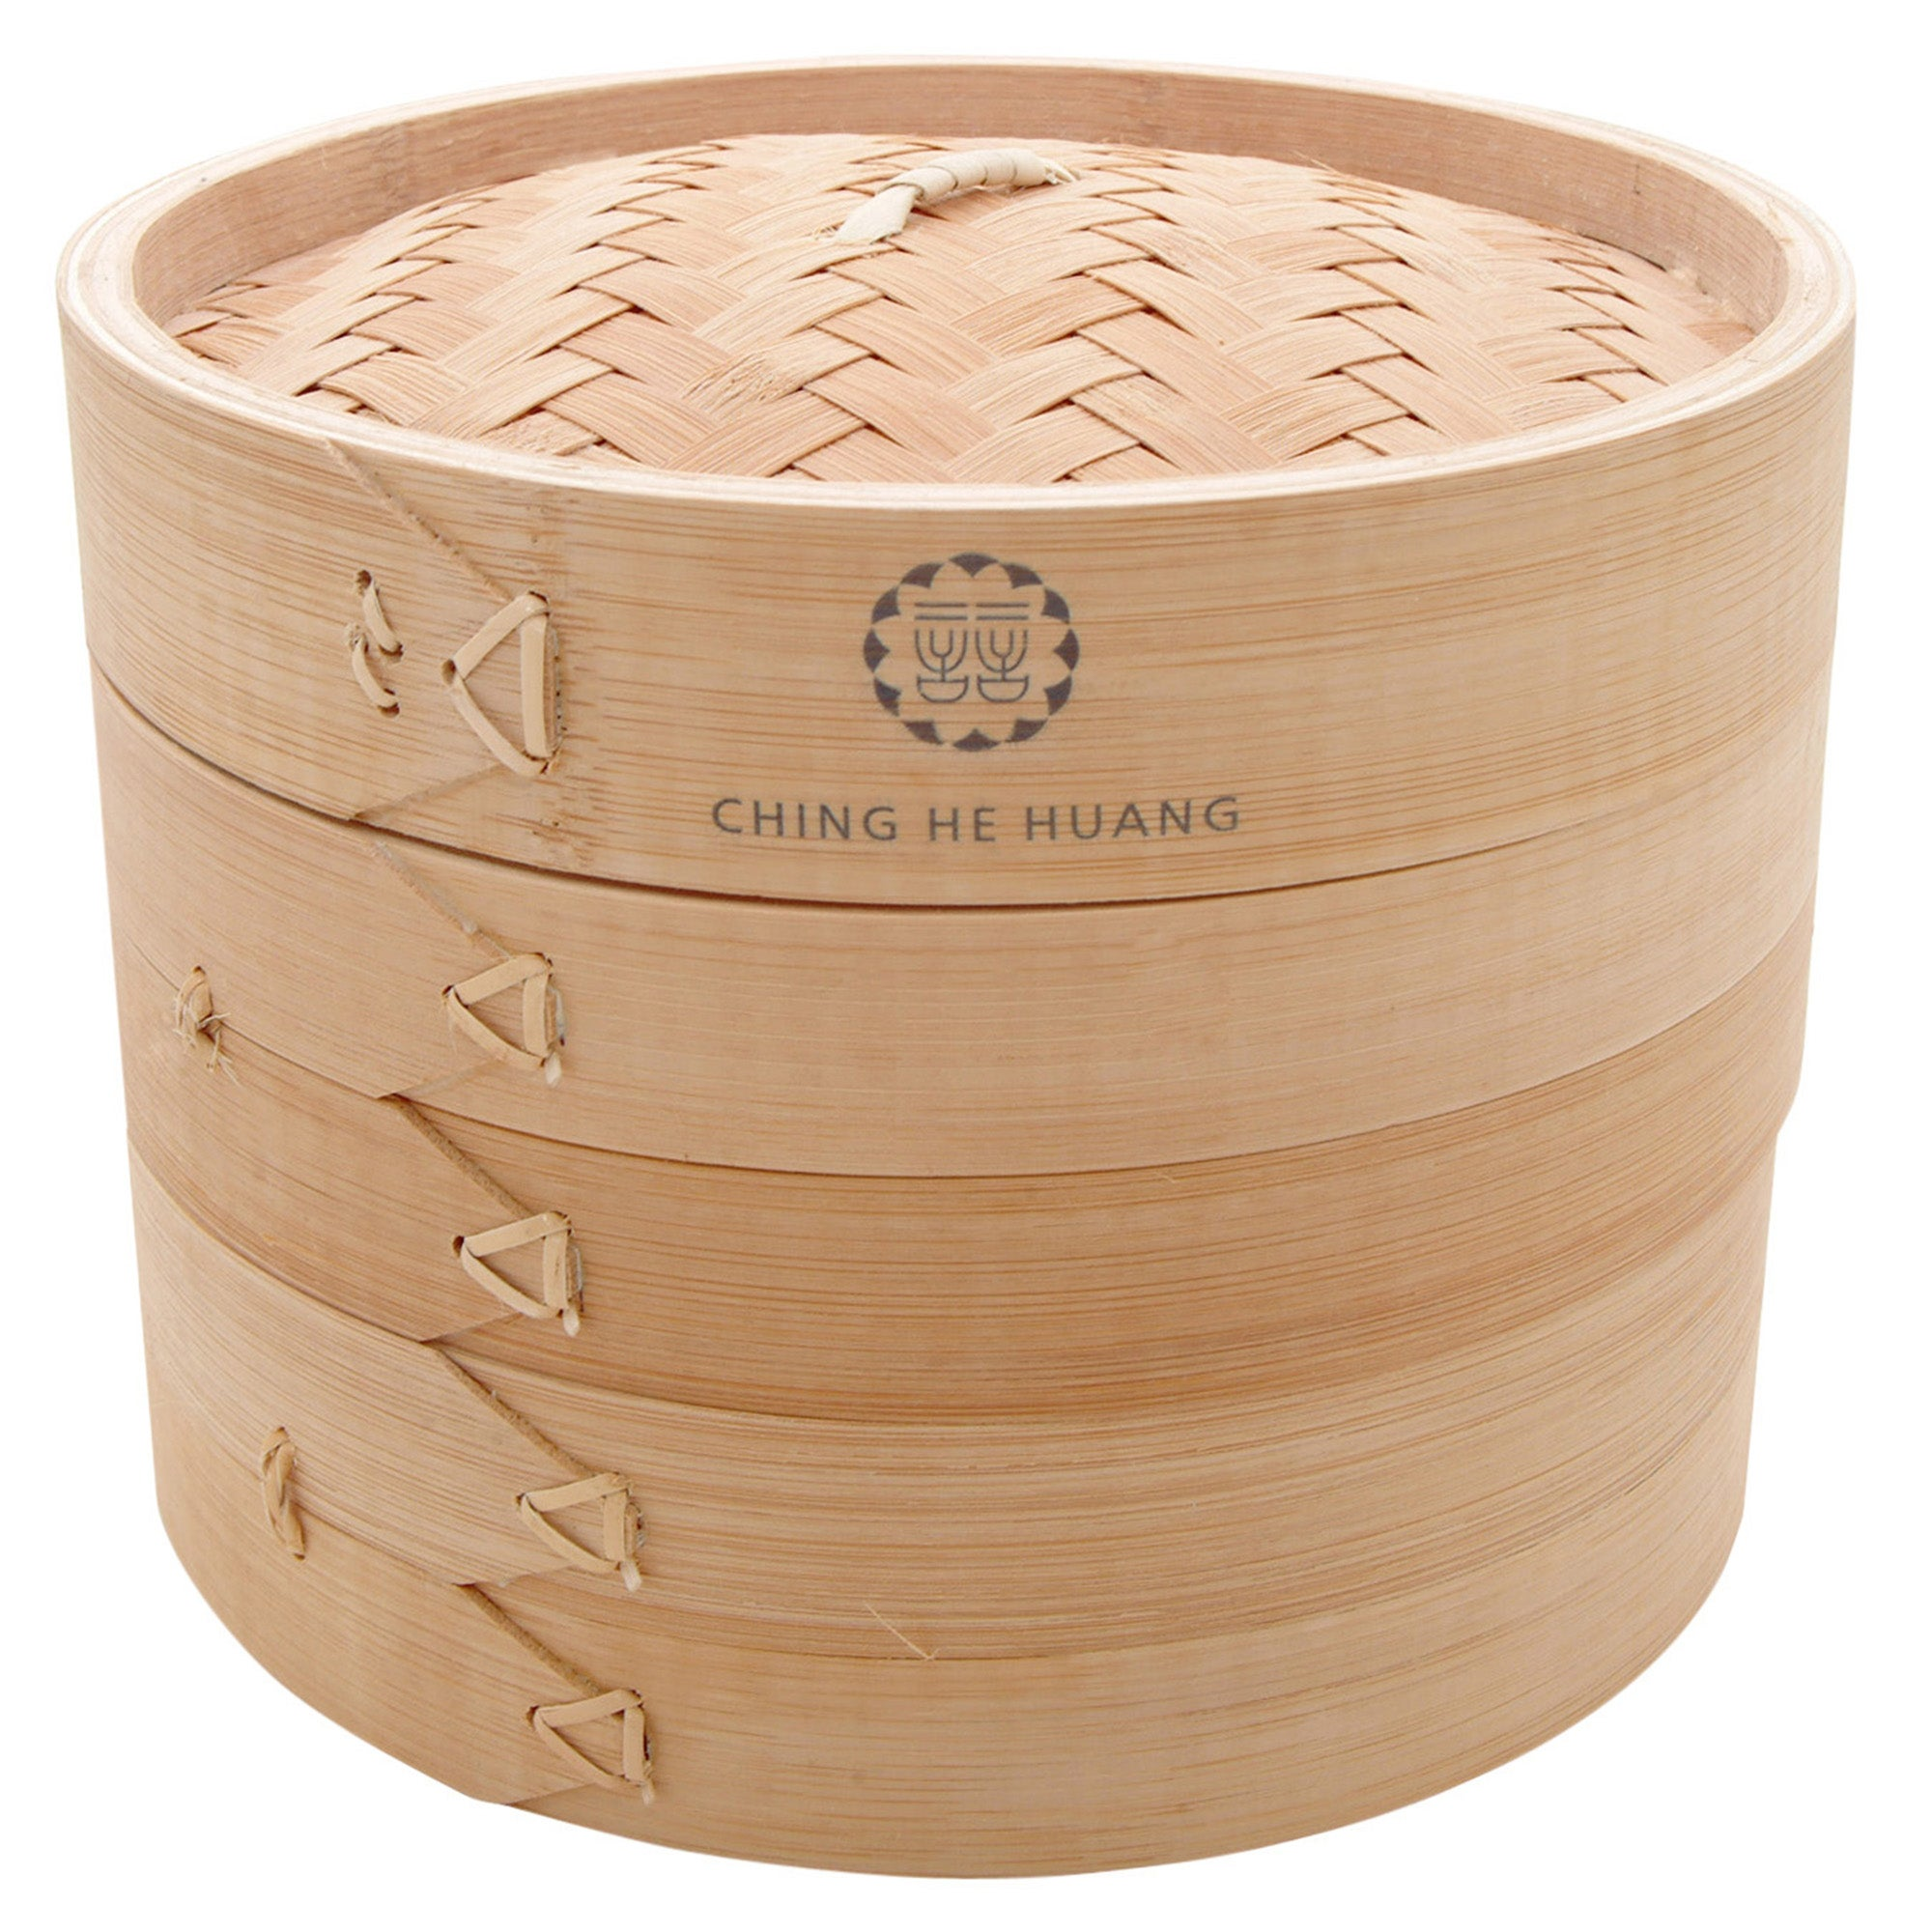 Ching He Huang Collection Double Tier Bamboo Steamer